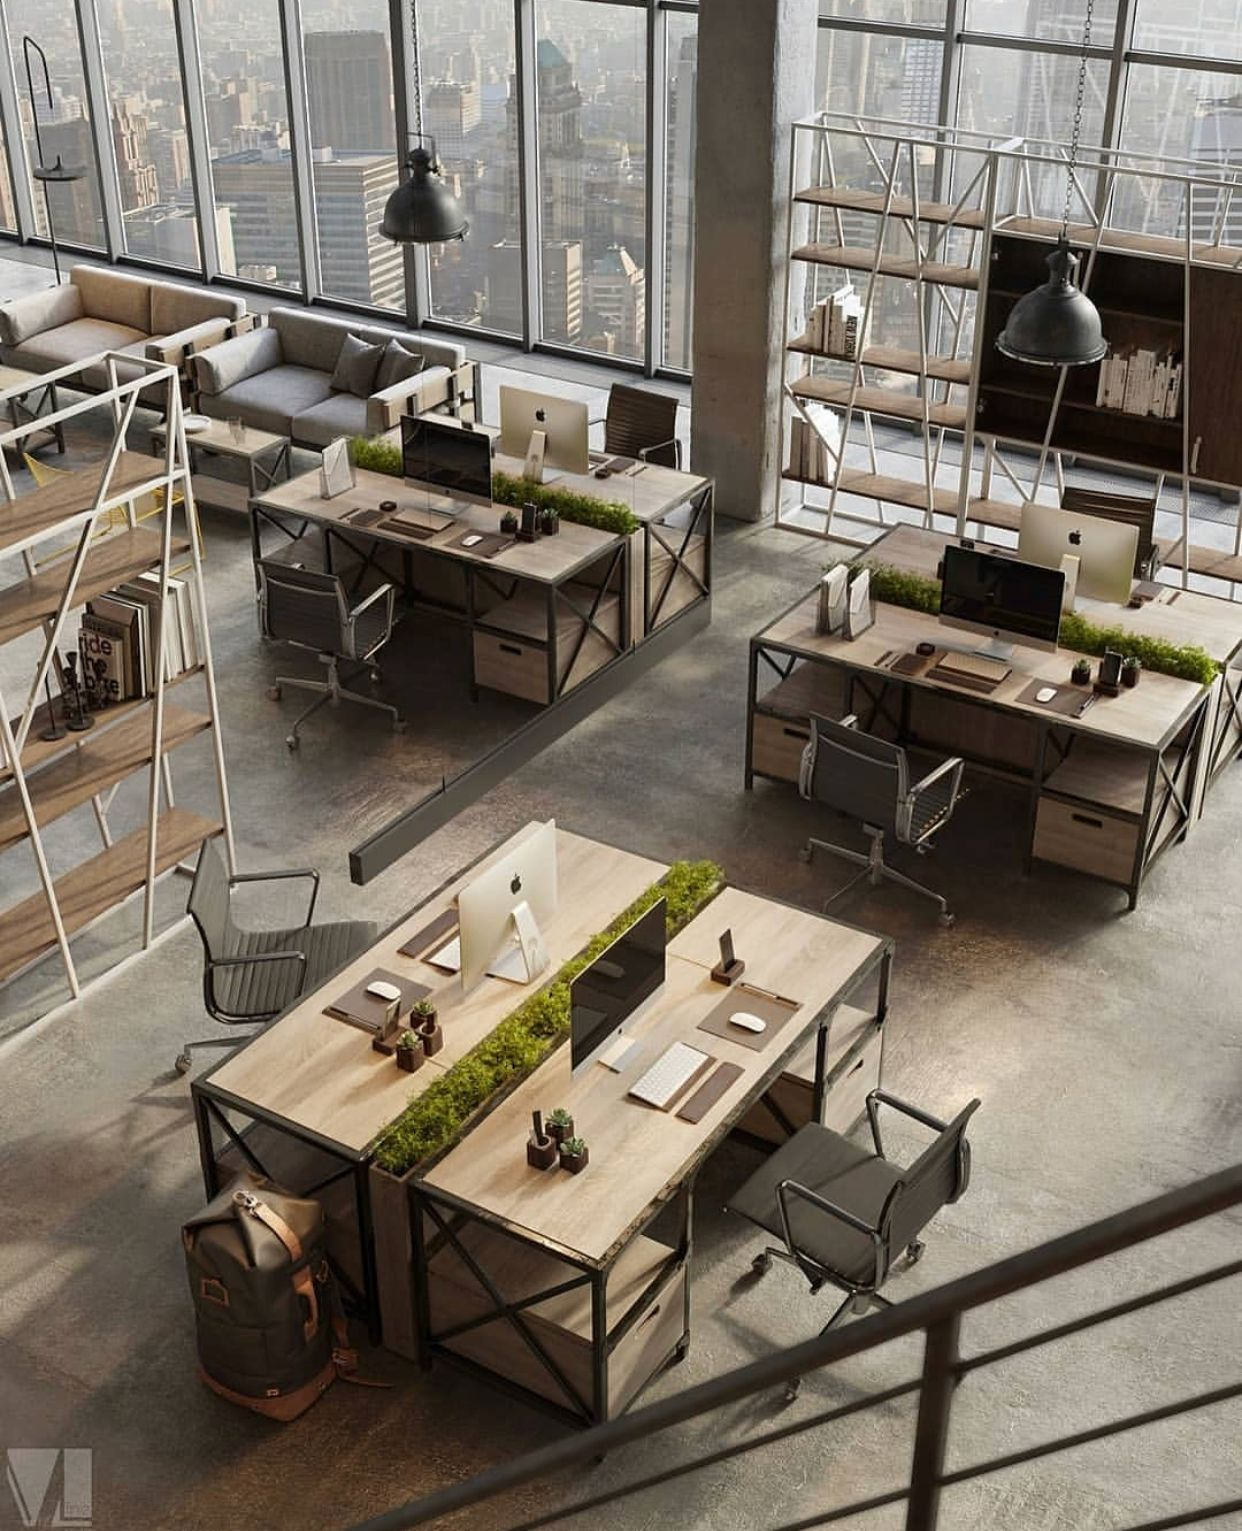 Integrando la naturaleza working spaces en 2019 for Diseno de oficinas modernas para abogados